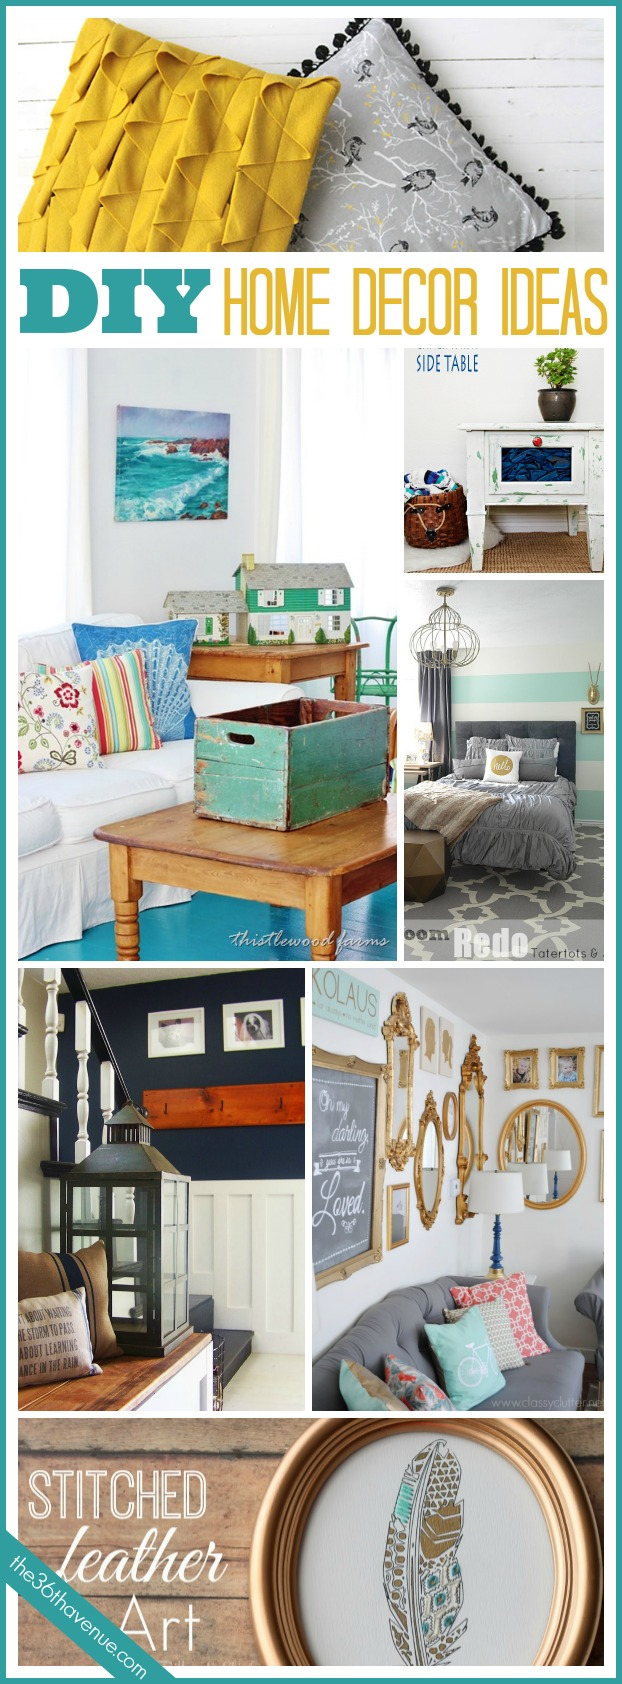 20 DIY Home Decor Ideas The 36th AVENUE